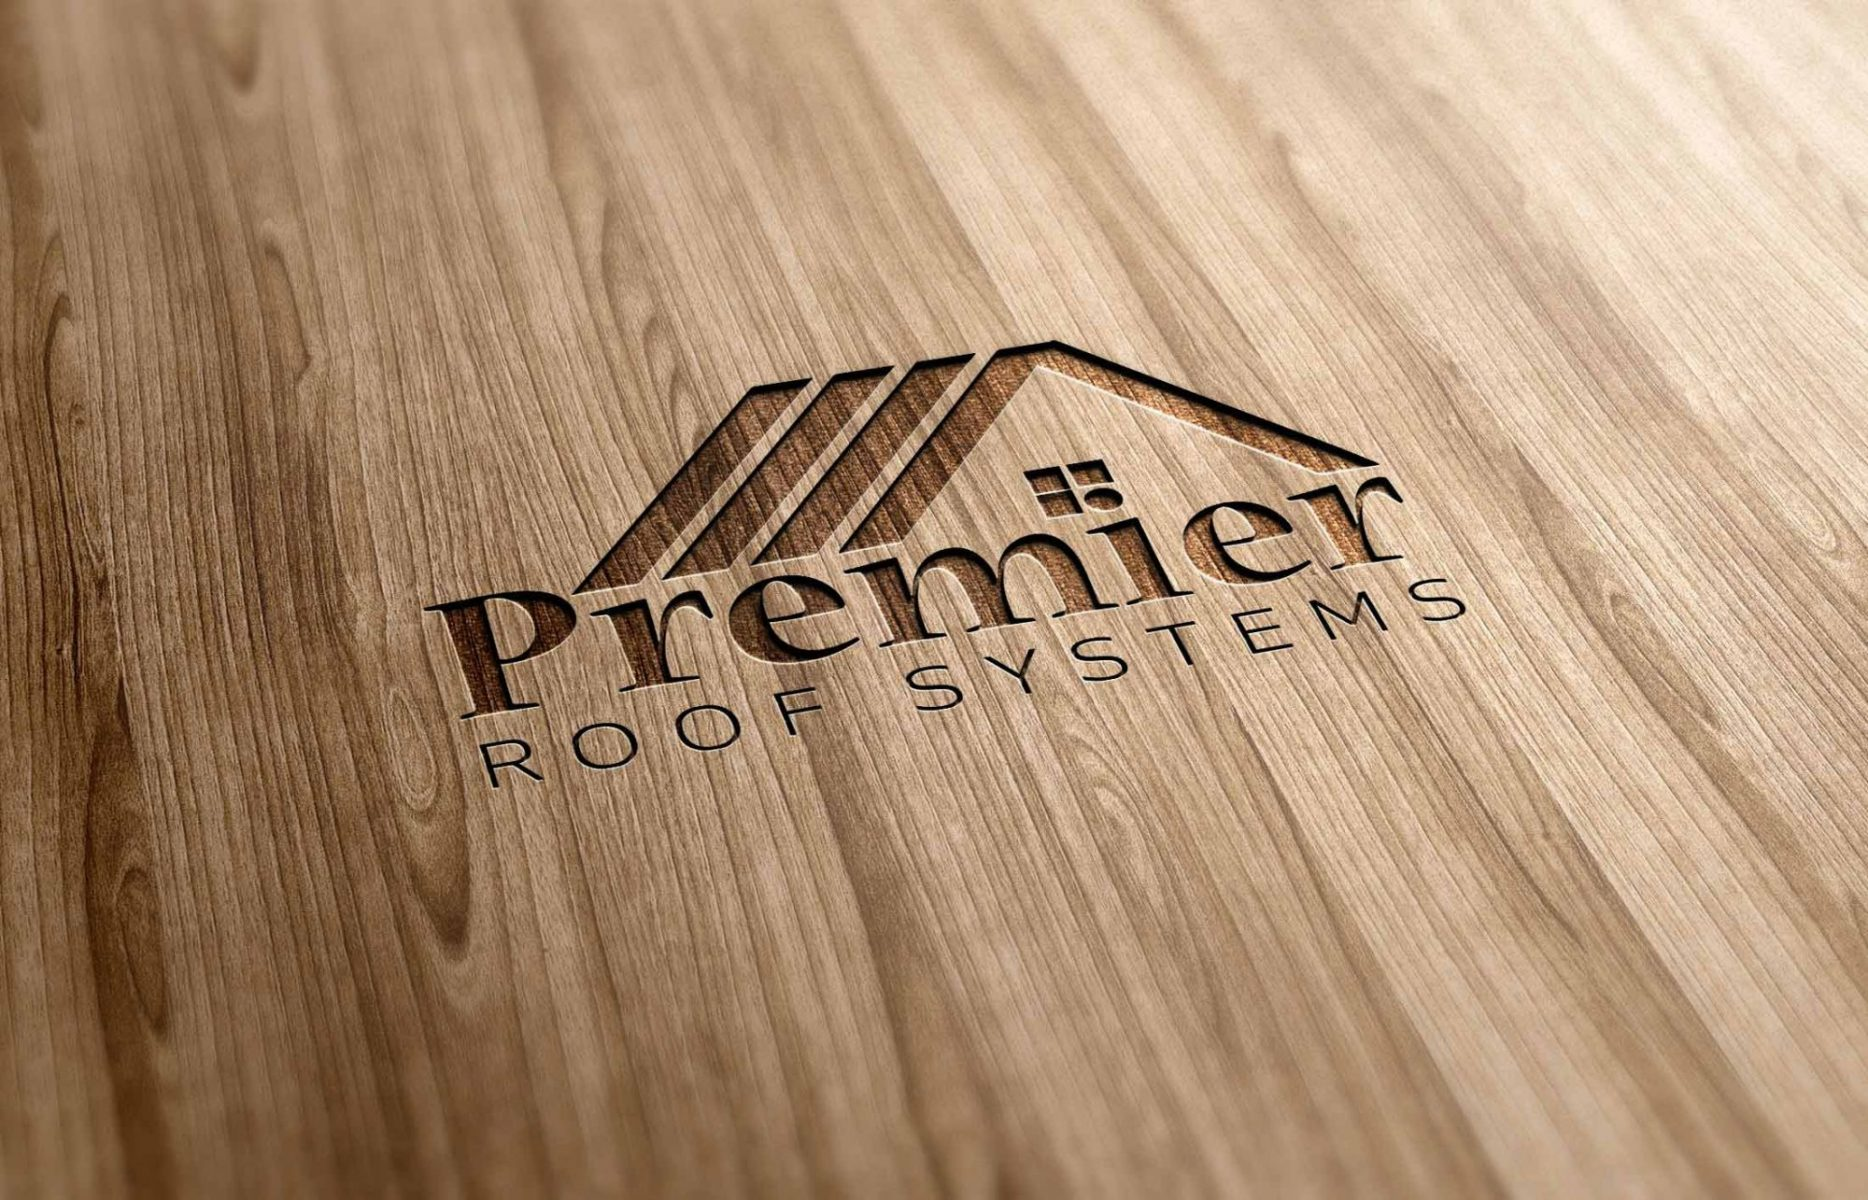 Premier Roof Systems - Wooden Logo Effect